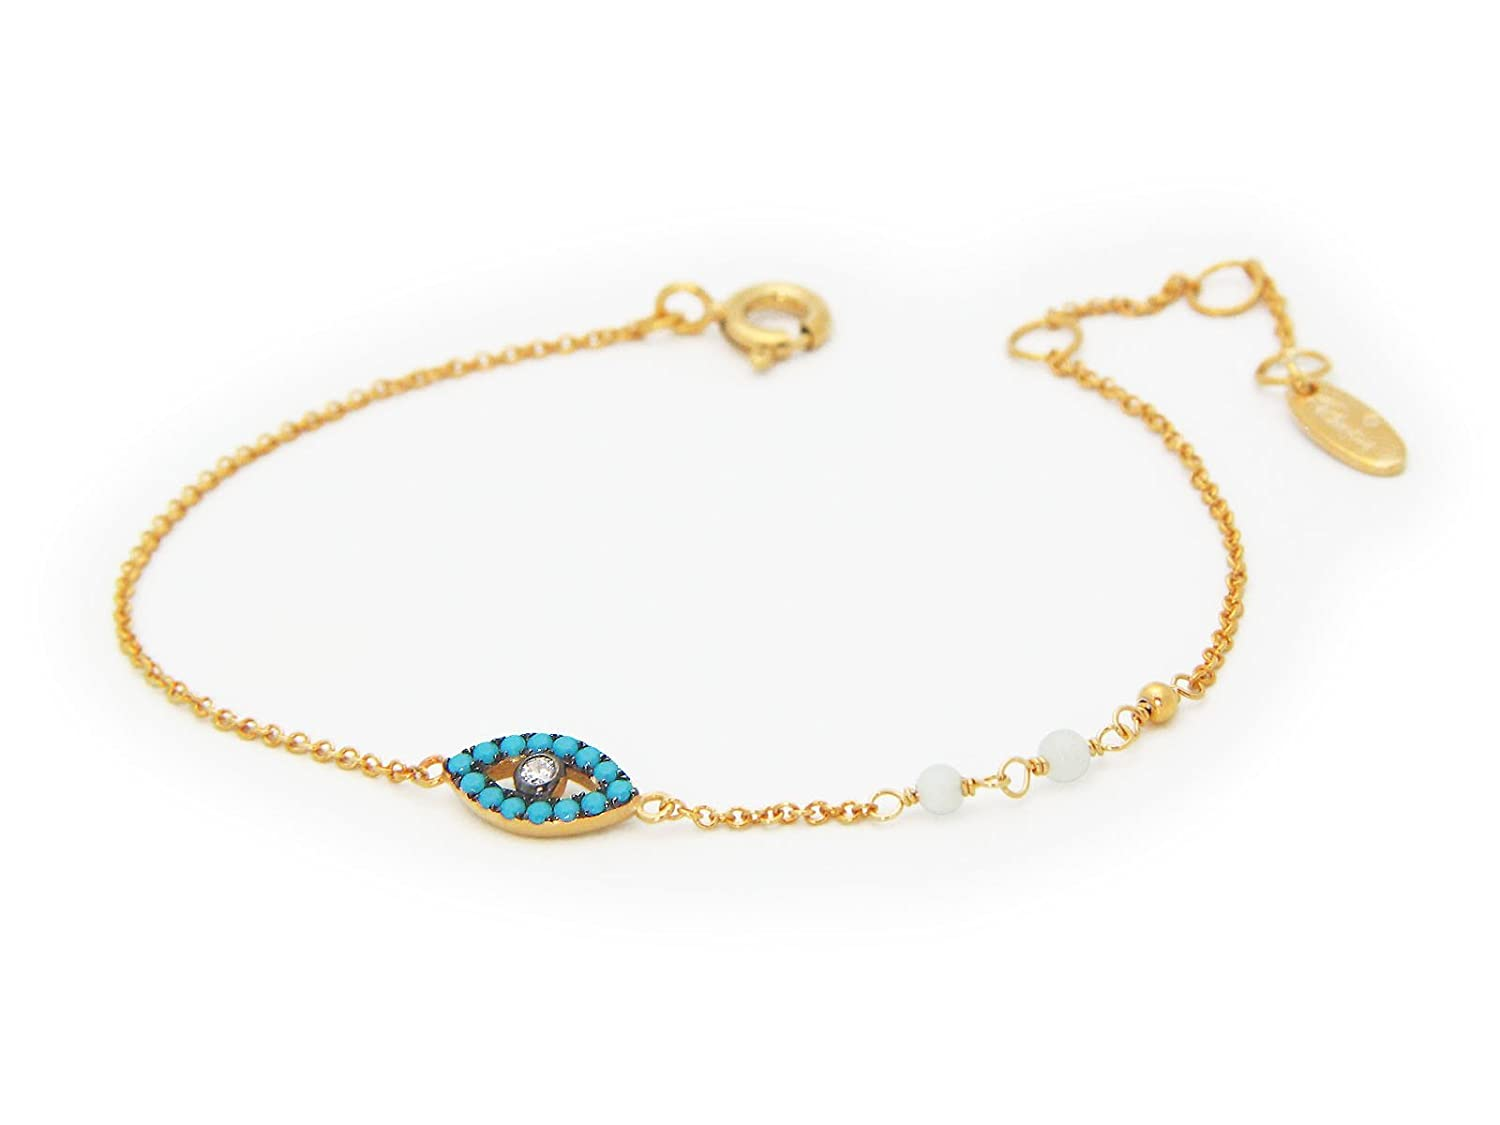 Evil Eye Bracelet Gold Plated Silver Chain Dainty Simulated Turquoise Eye Amulet Charm for Good Luck /& Protection